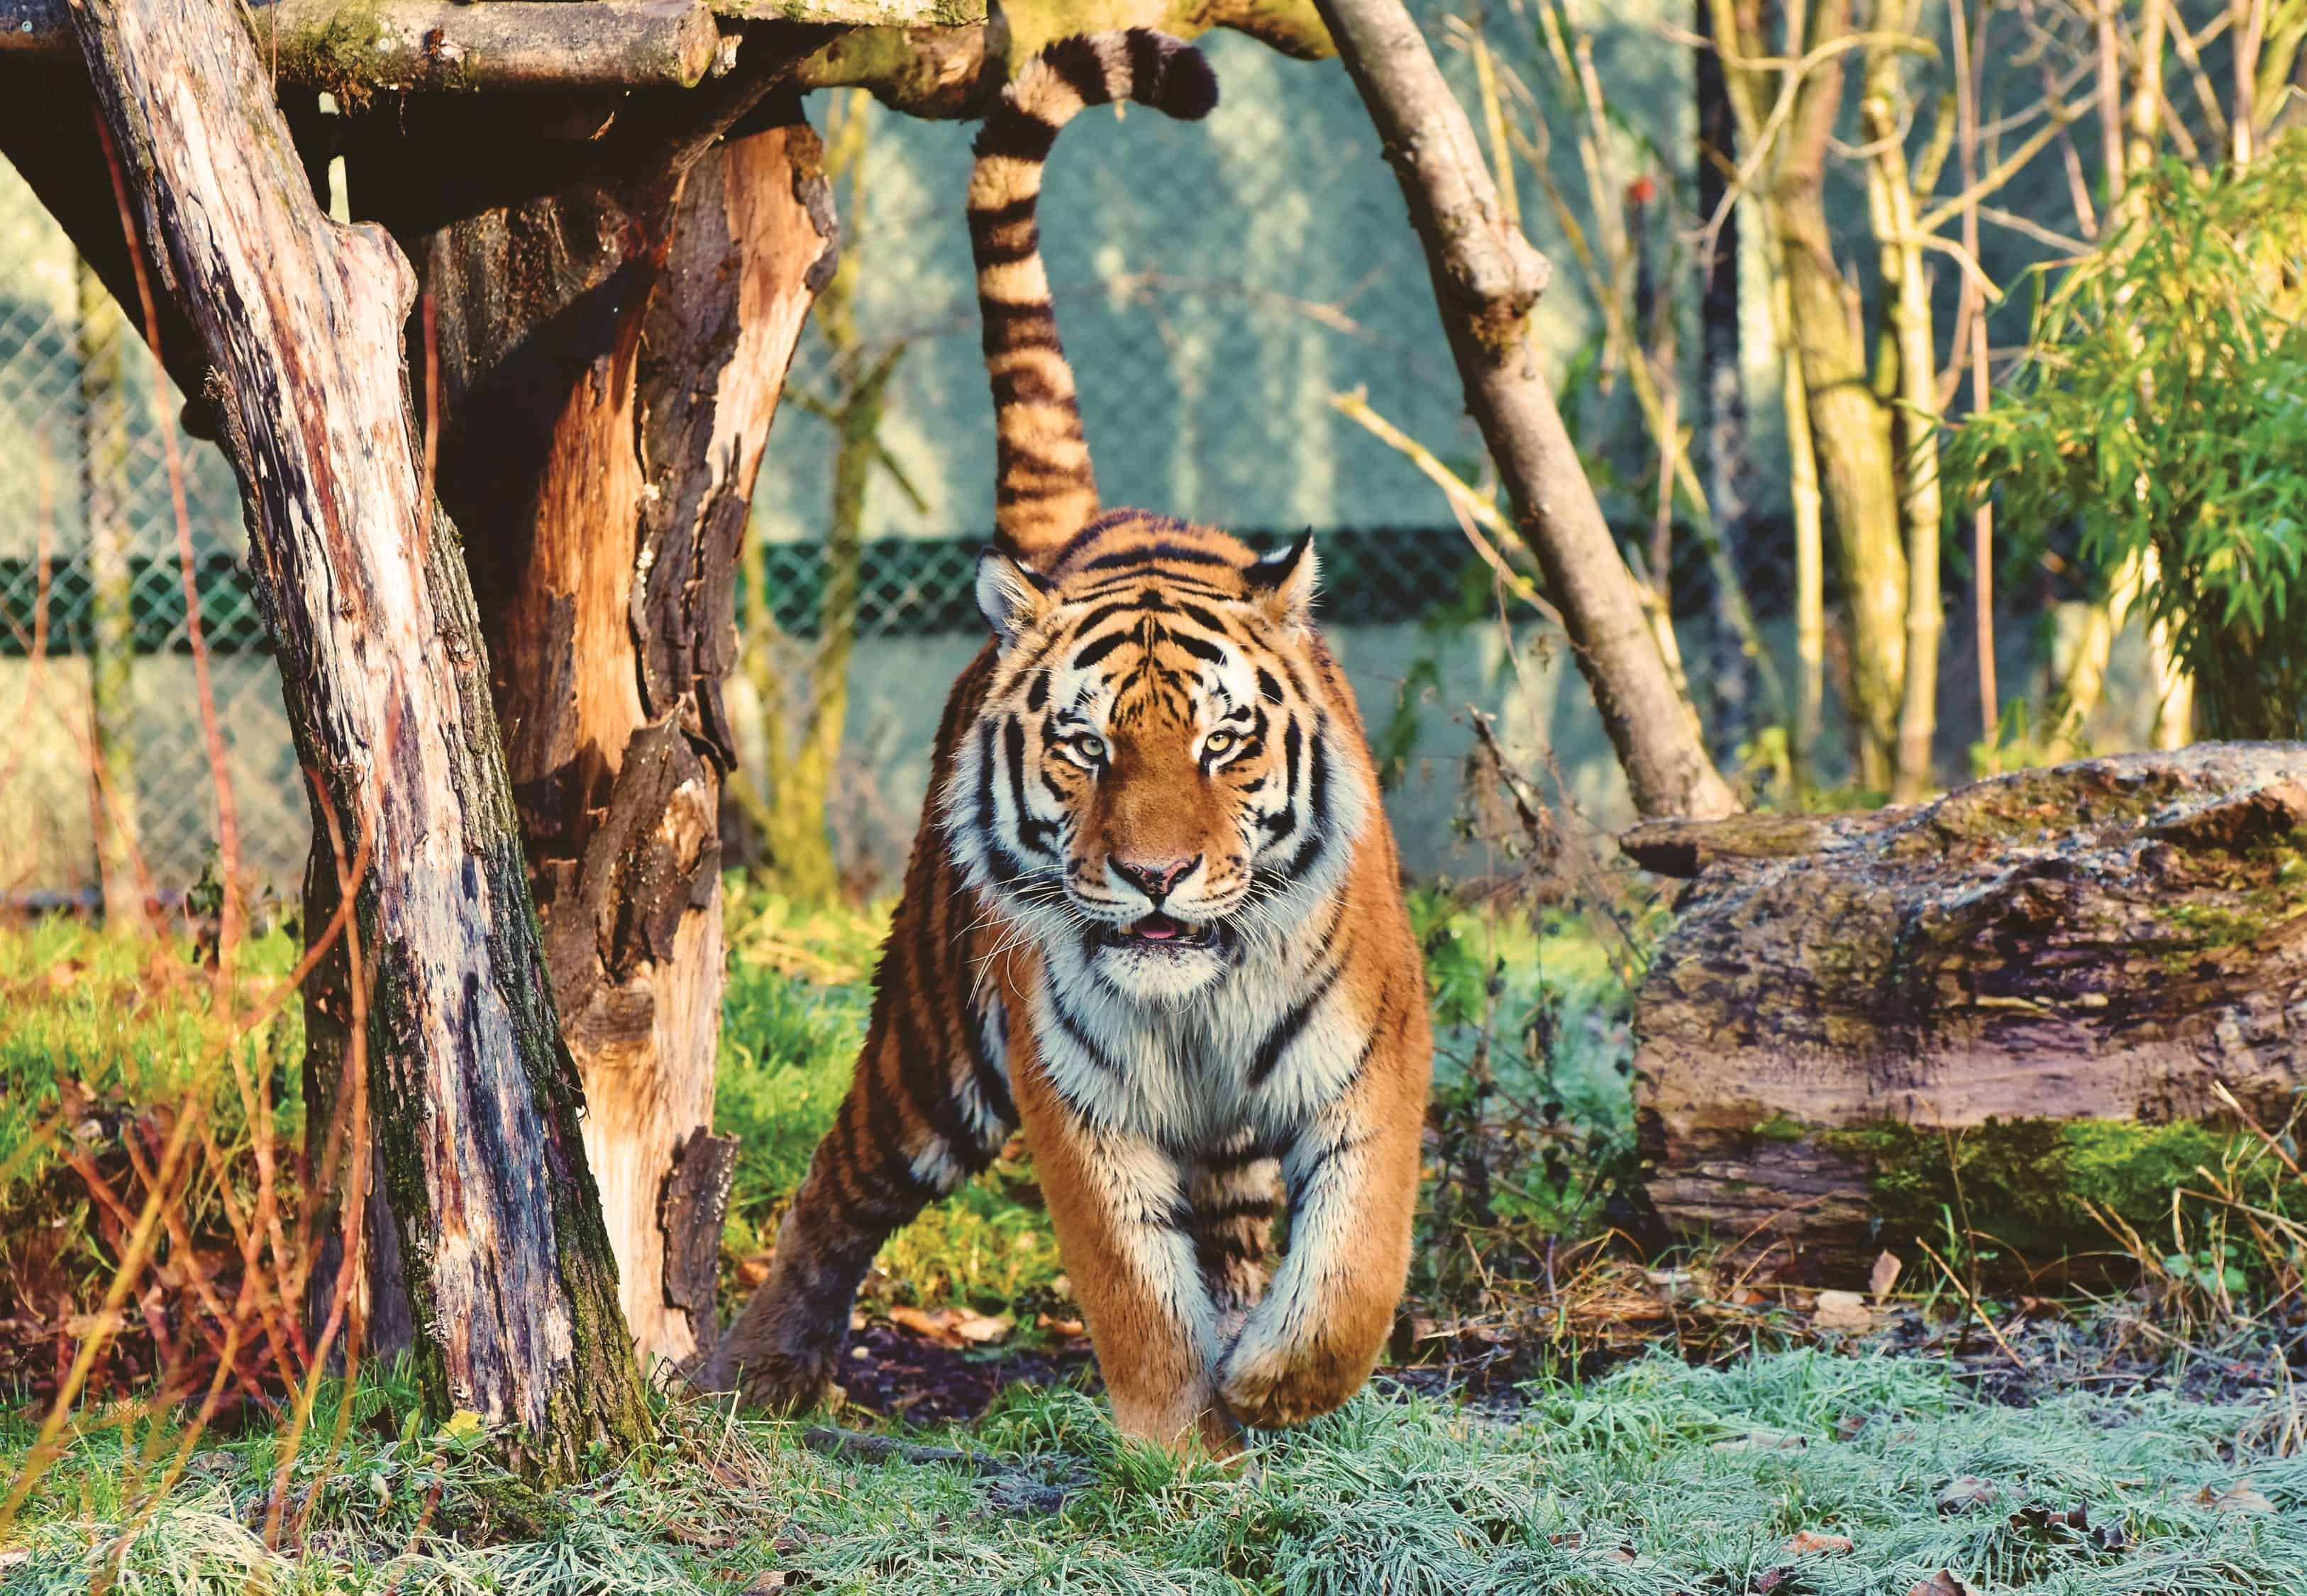 Where is Bengal Tiger found?